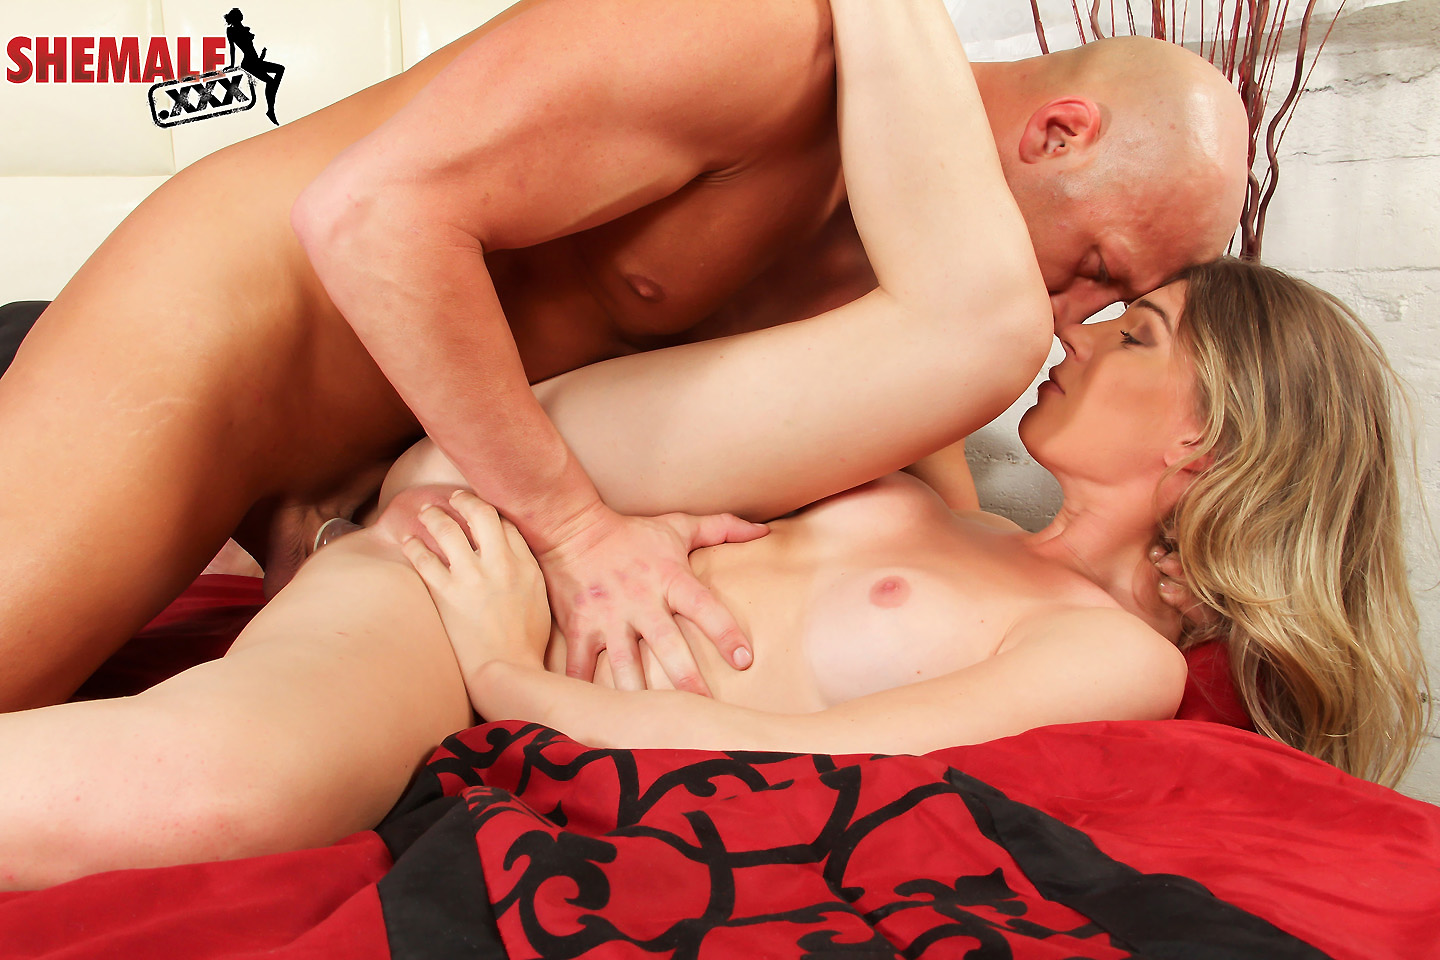 from Davion angelina joulie getting fucked in the ass